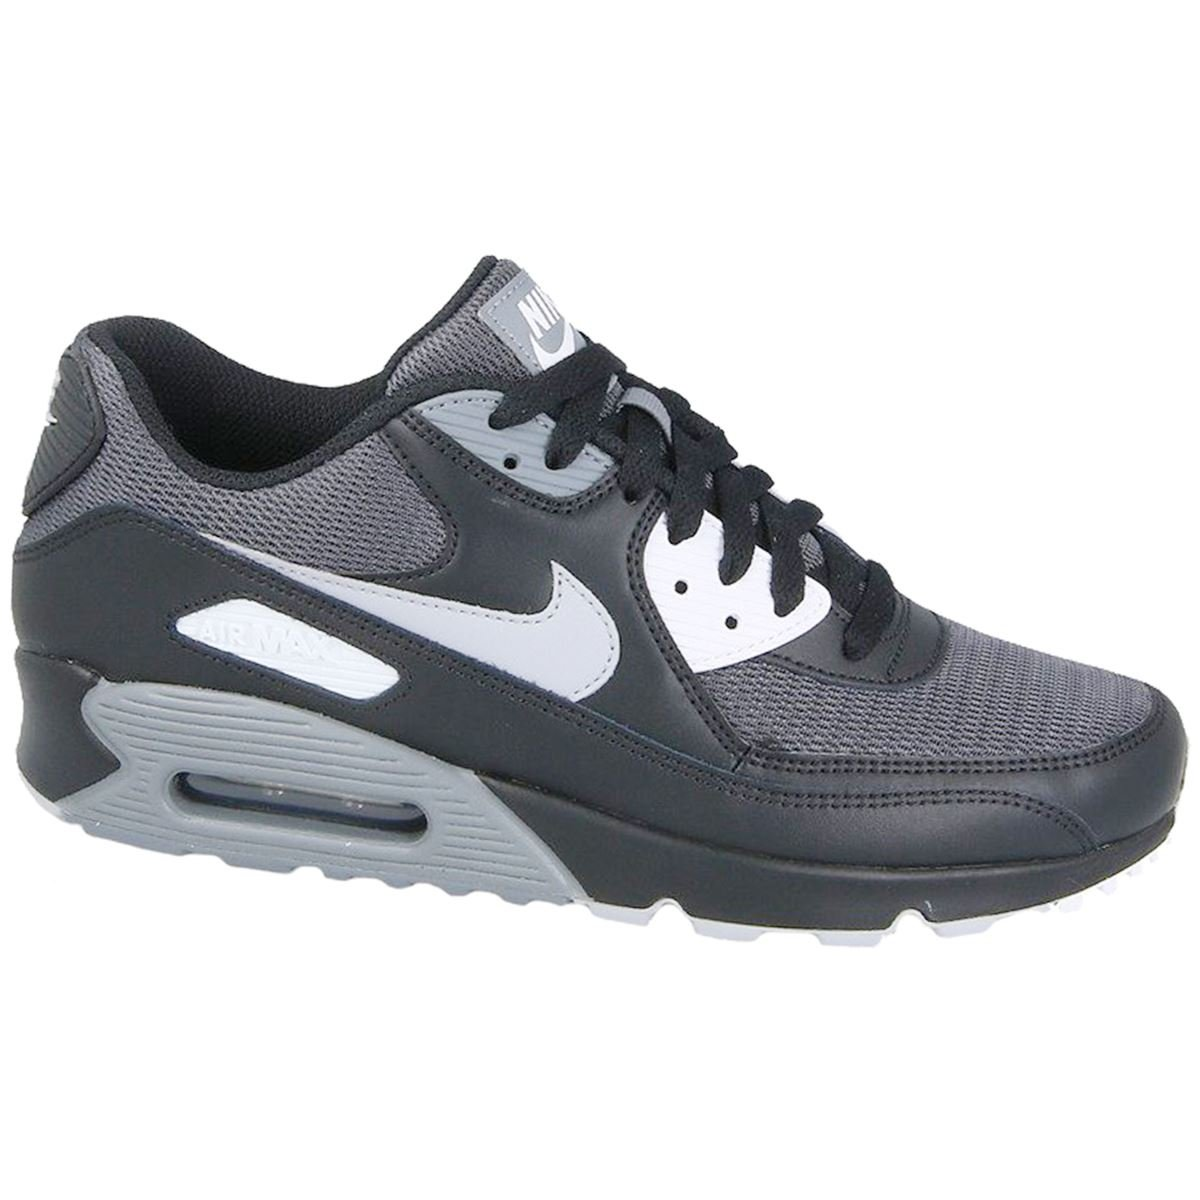 save off 11e39 72096 Galleon - NIKE Mens Air Max 90 Essential Running Shoes Black Wolf Grey Dark  Grey AJ1285-003 Size 10